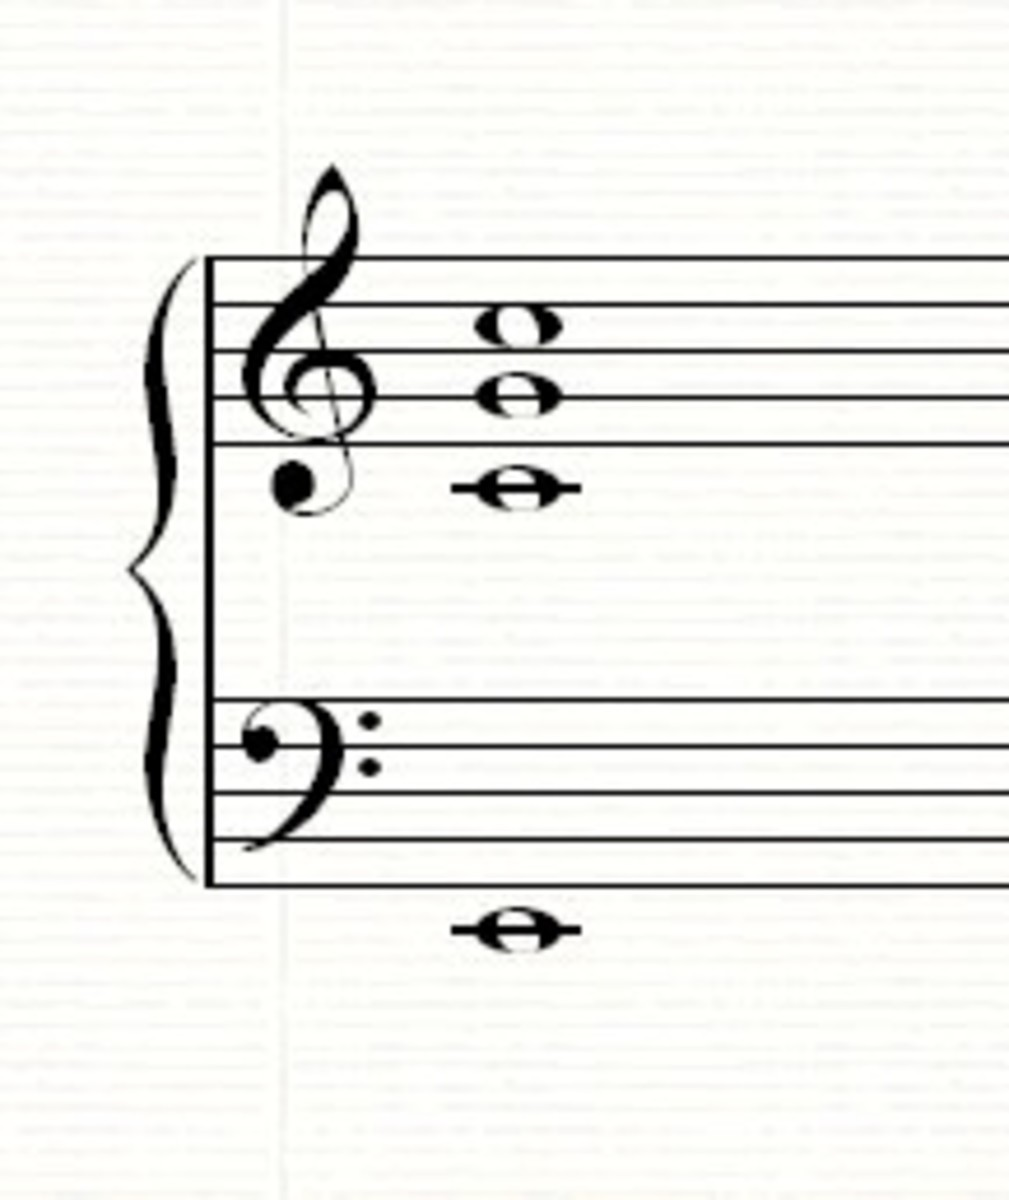 C chord in 1st inversion (E is the lowest note)